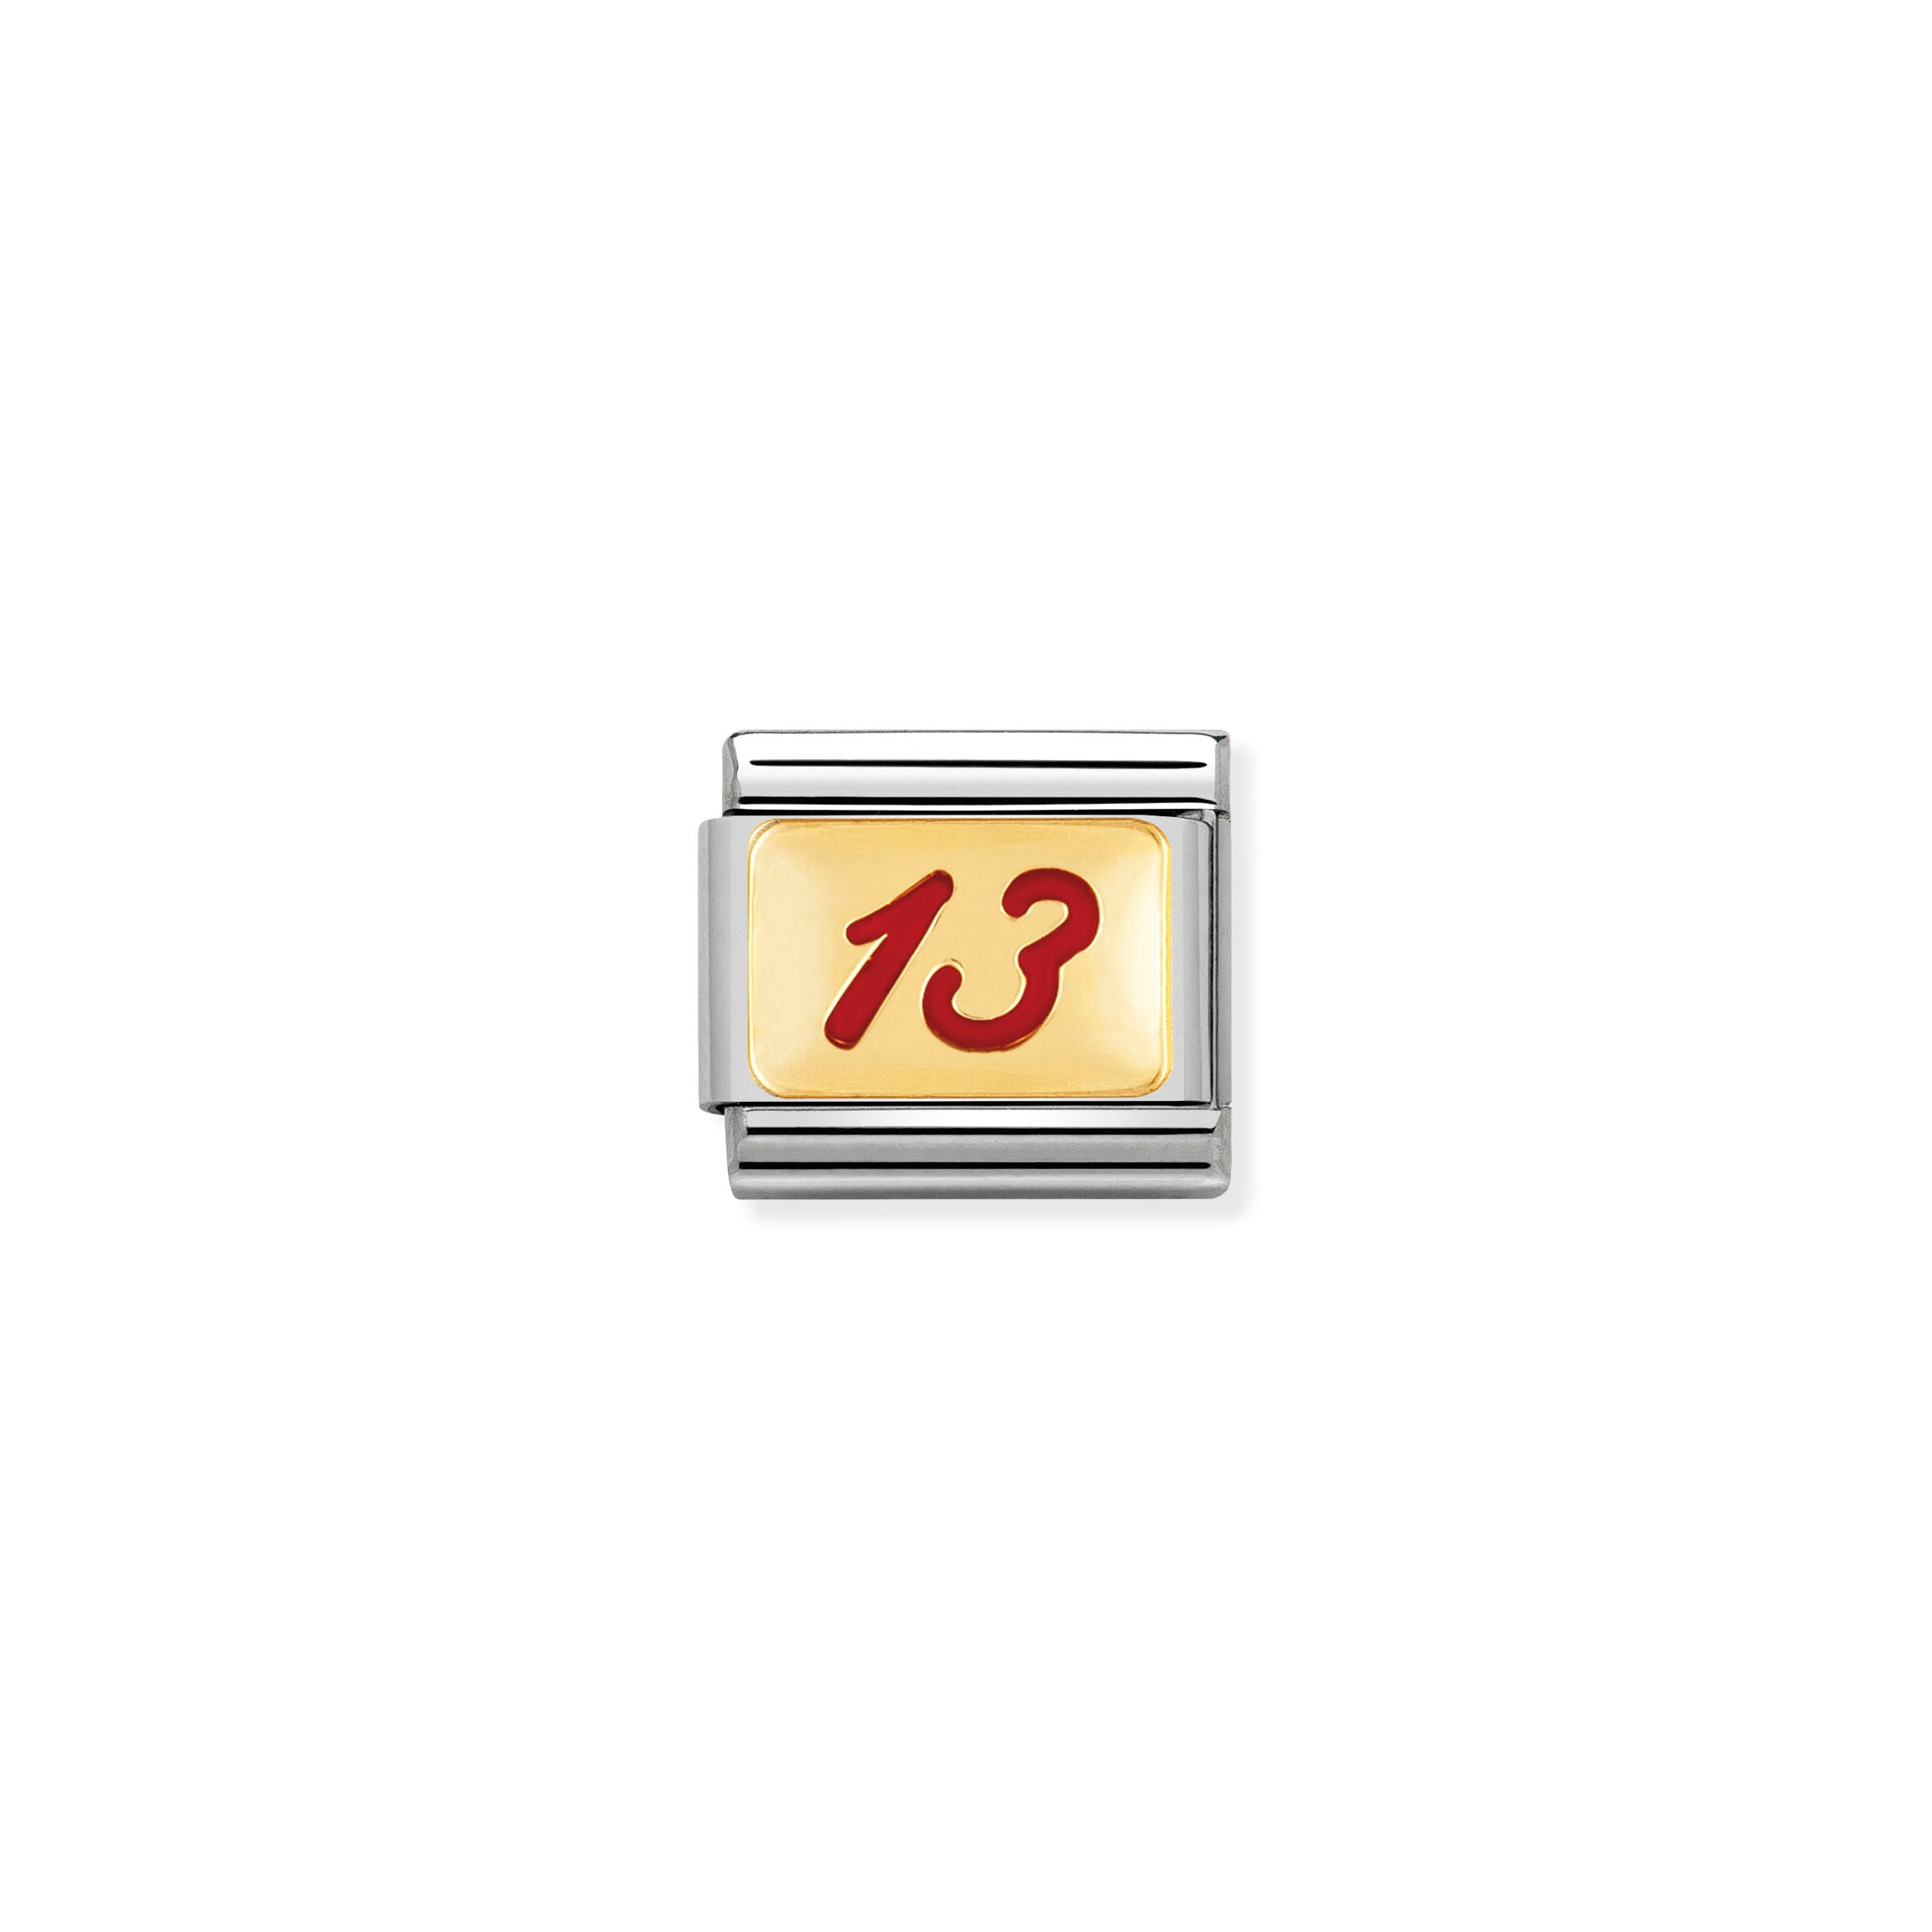 NOMINATION - Composable Classic MESSAGES 1 st/steel, enamel & 18ct gold (Number 13 red)